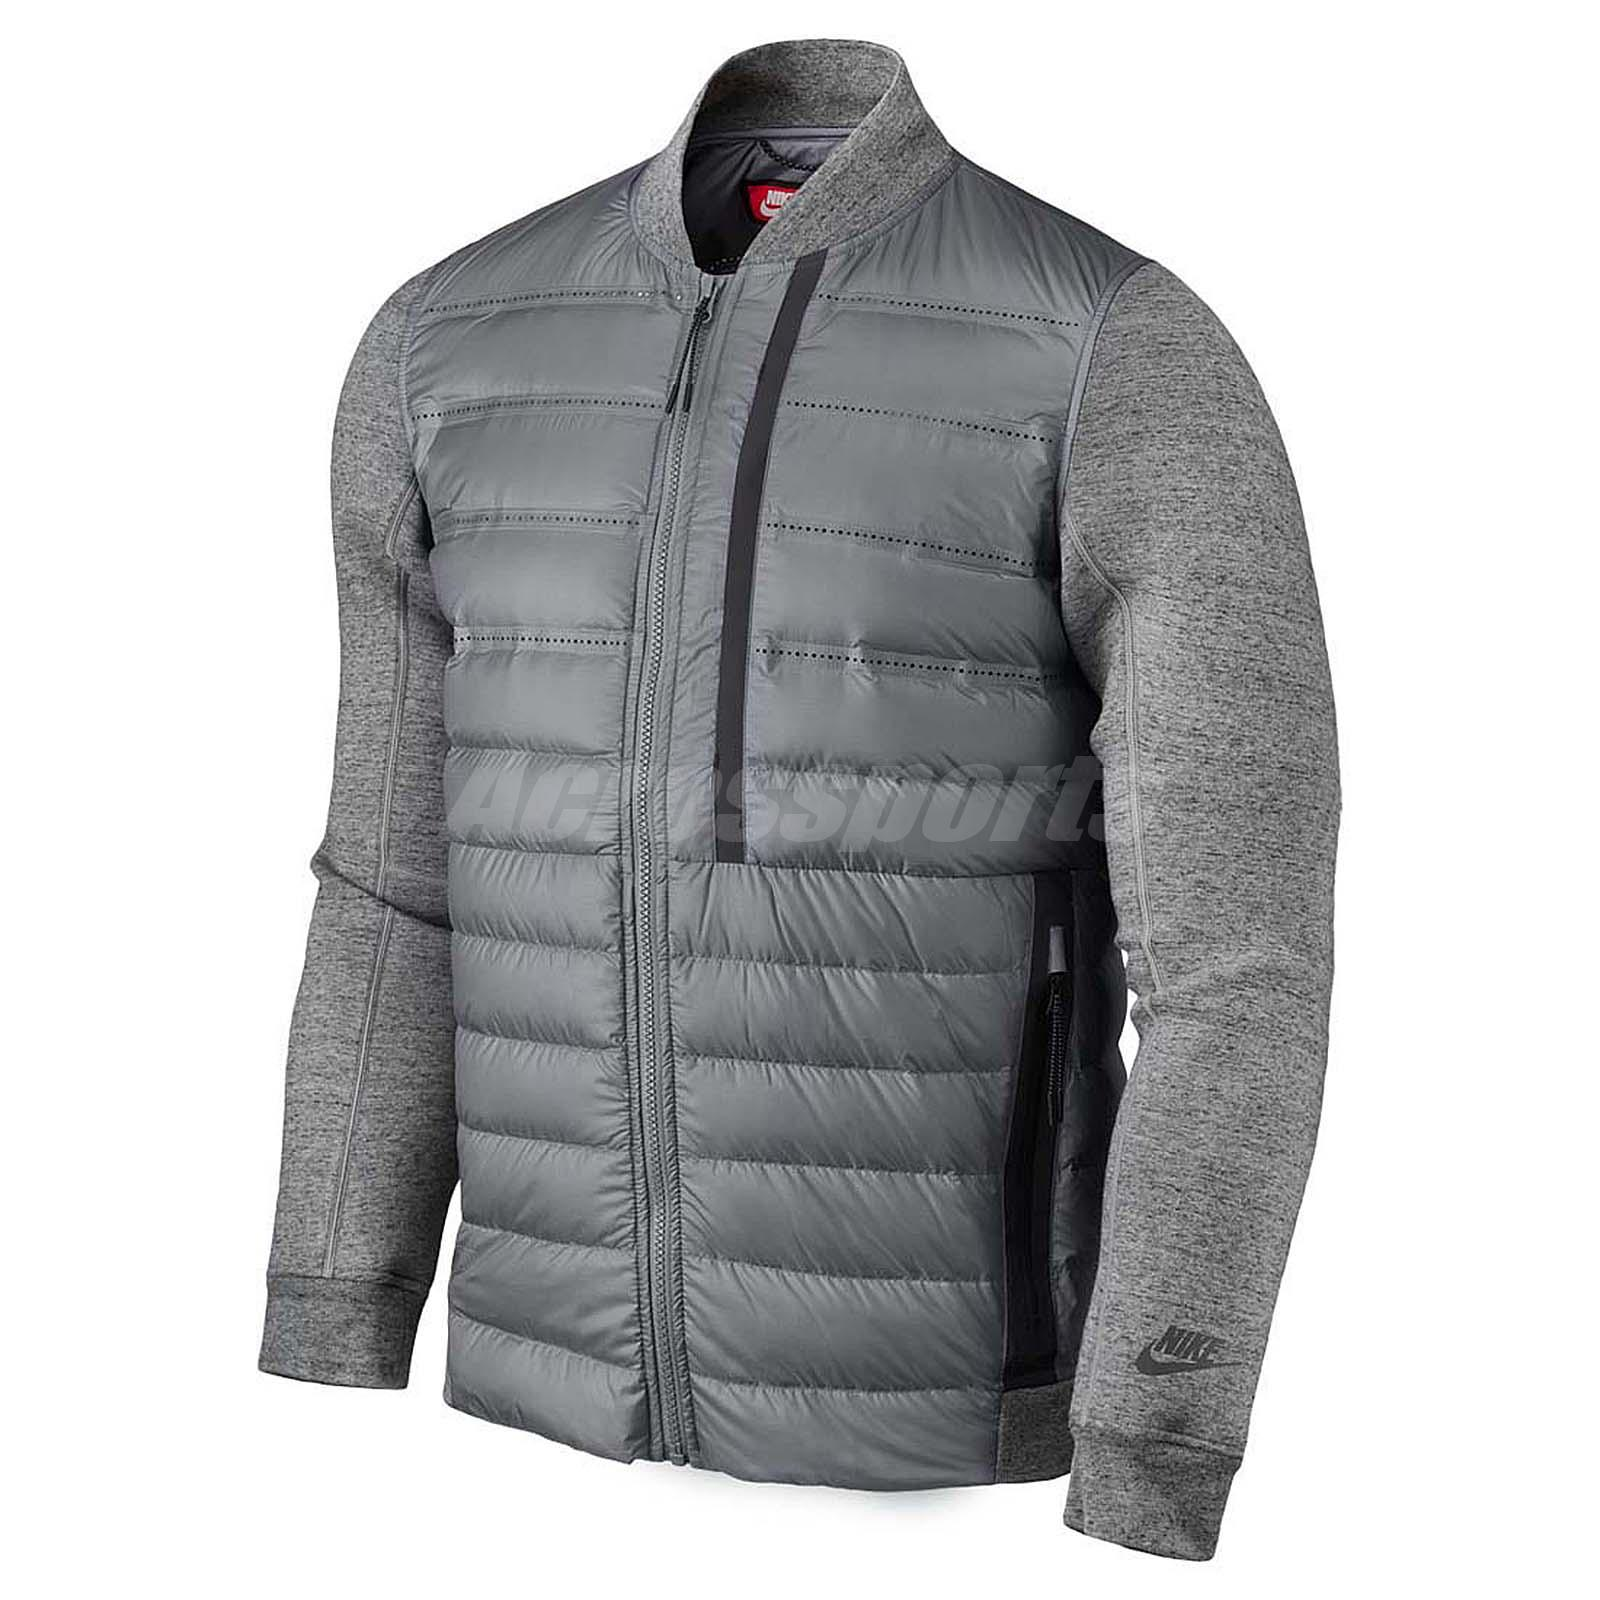 Nike down jacket men's